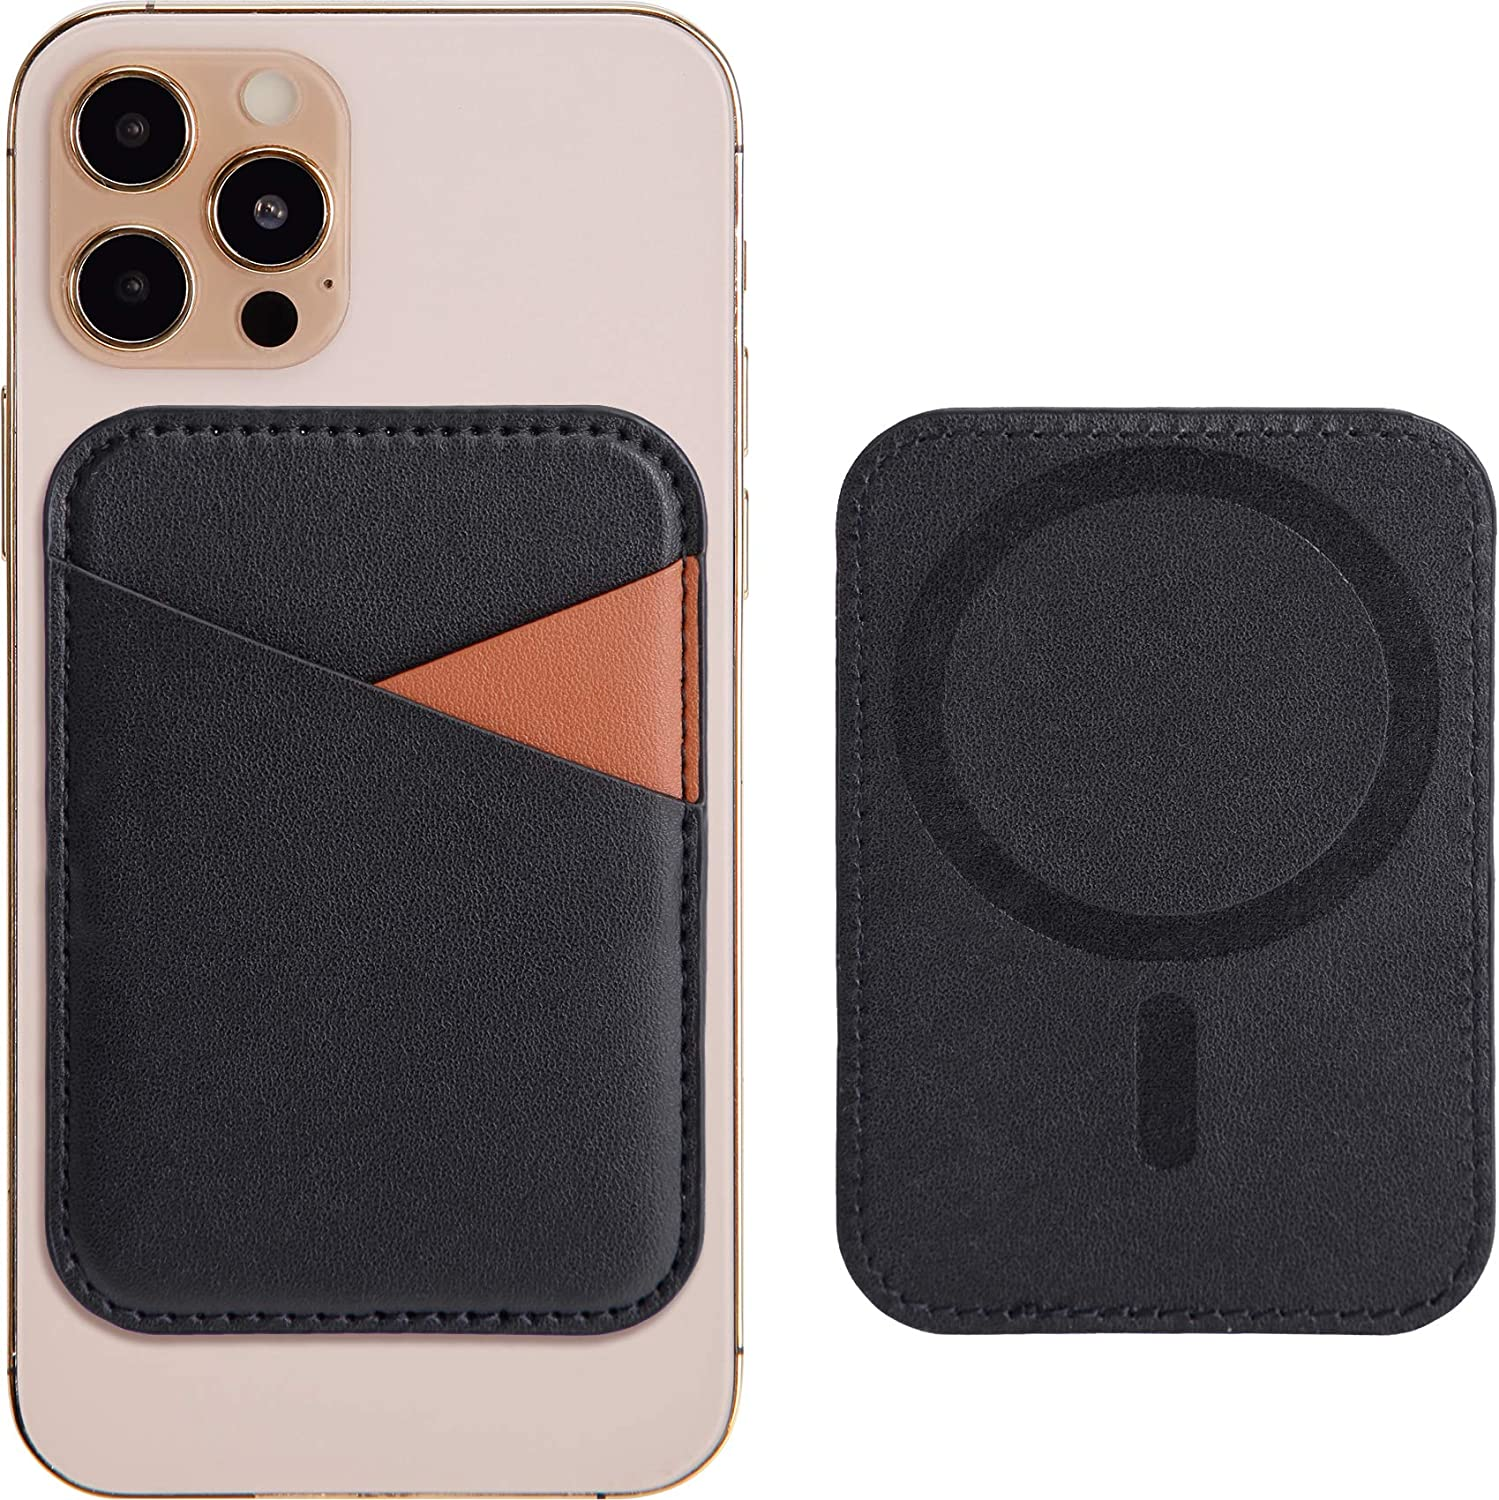 Magnetic Leather Wallet with MagSafe for iPhone 12/12 Mini/12 Pro/12 Pro Max, RFID Card Holder Wallet, Max 3 Cards, Black+Brown